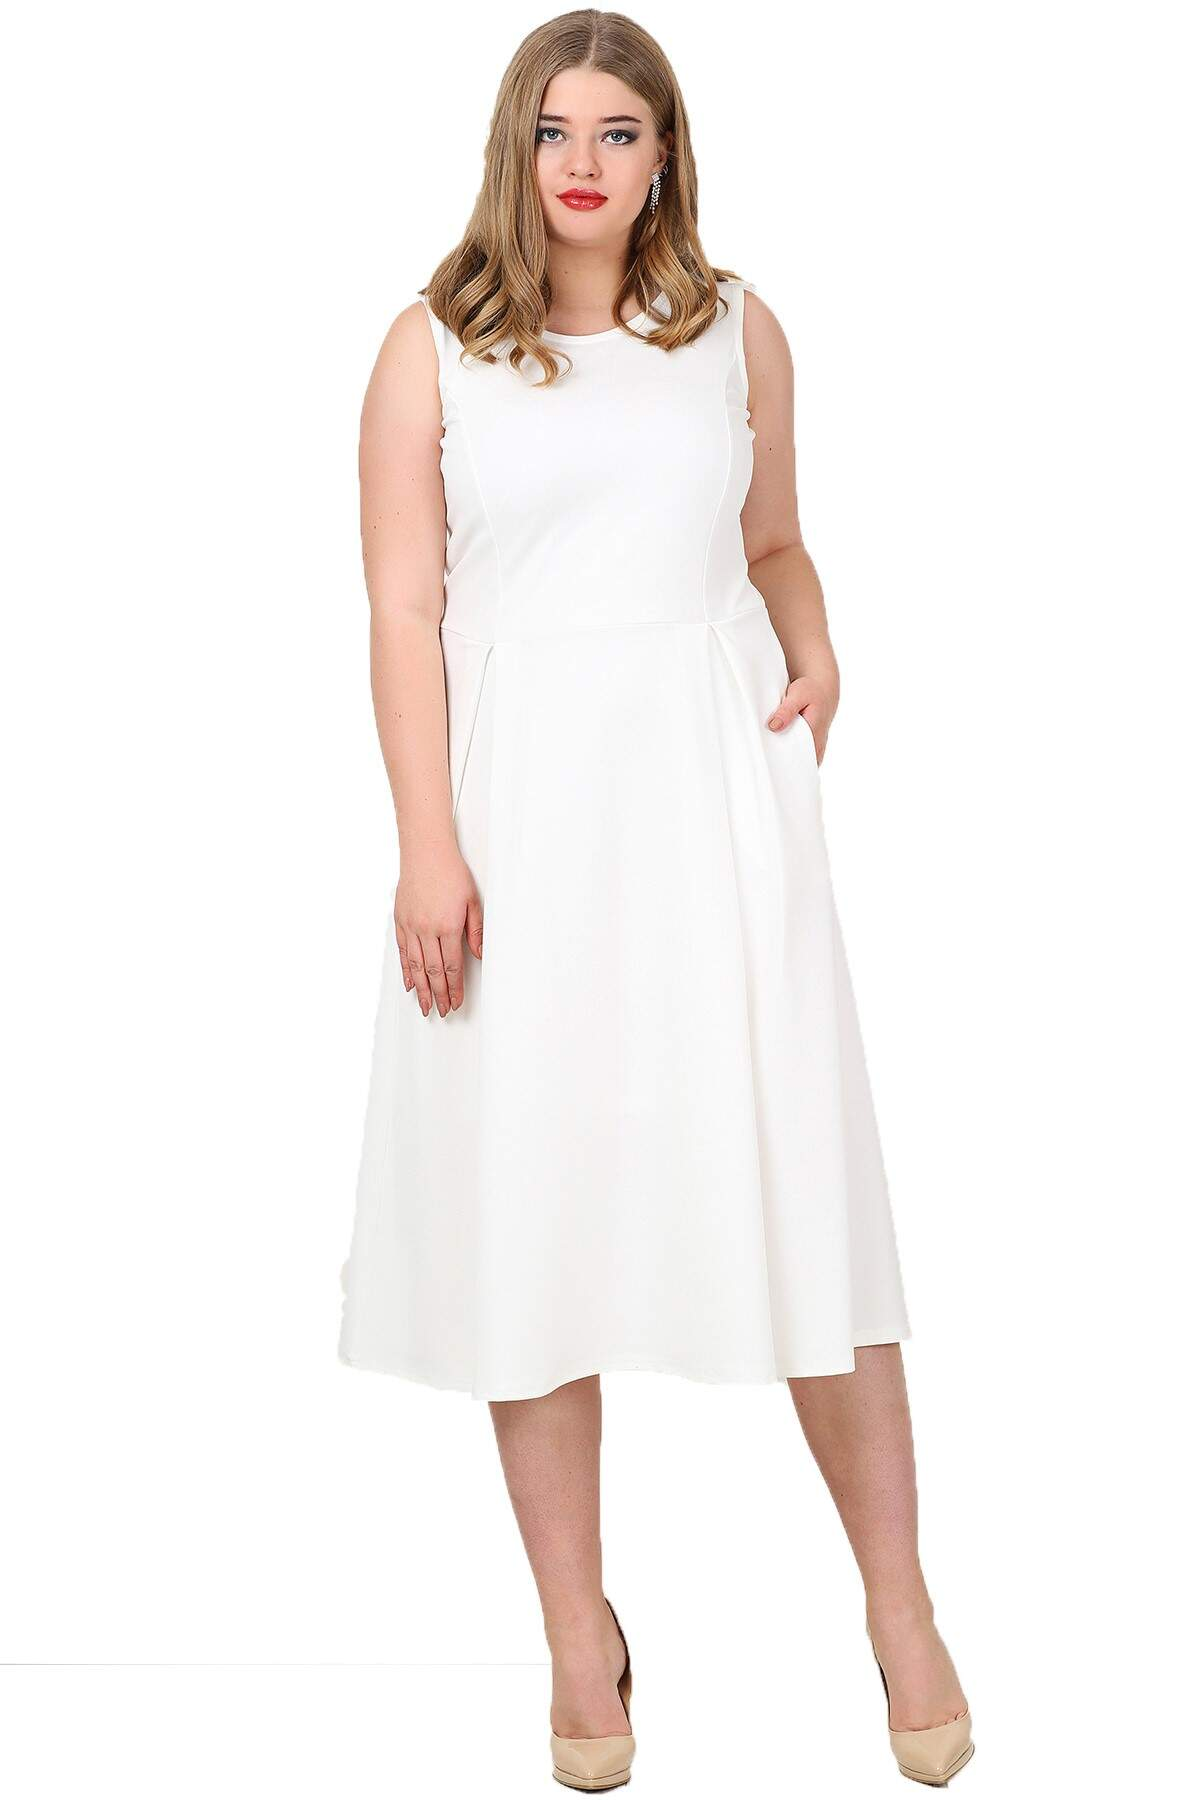 0868841a173 Plus Size Formal Dresses With Pockets